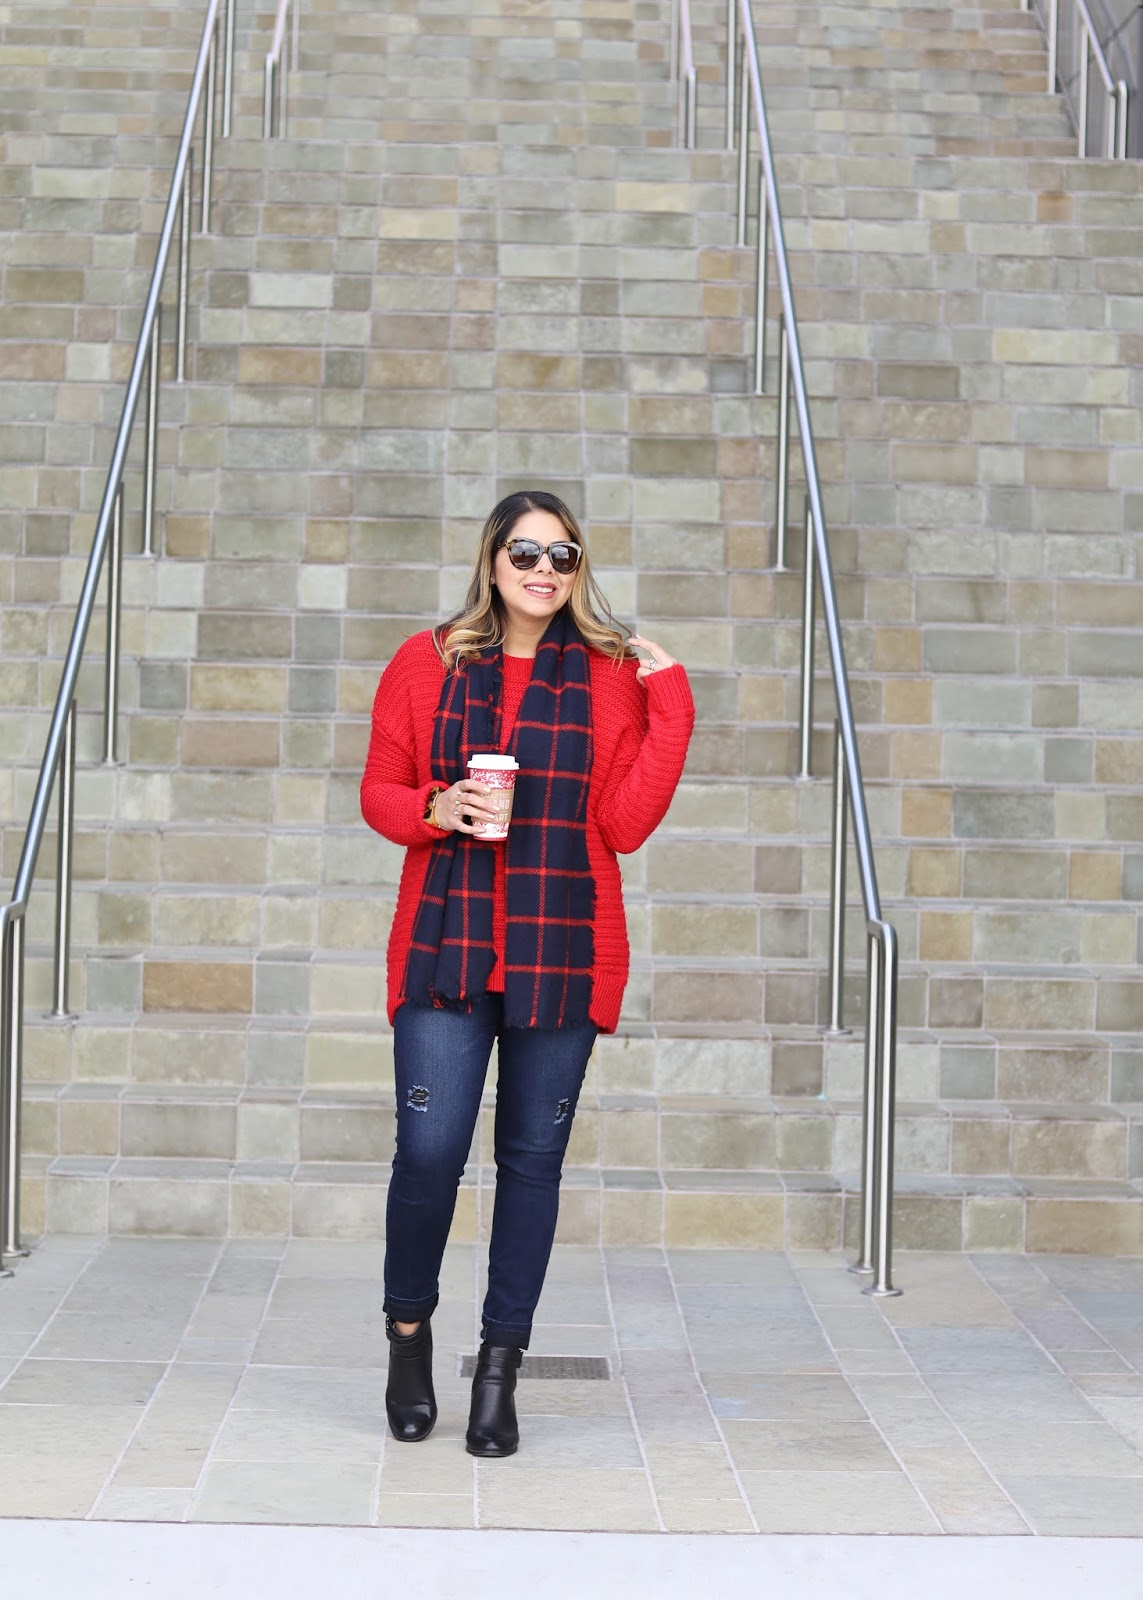 winter outfit for curvy women, latina fashion blogger, latina style blogger